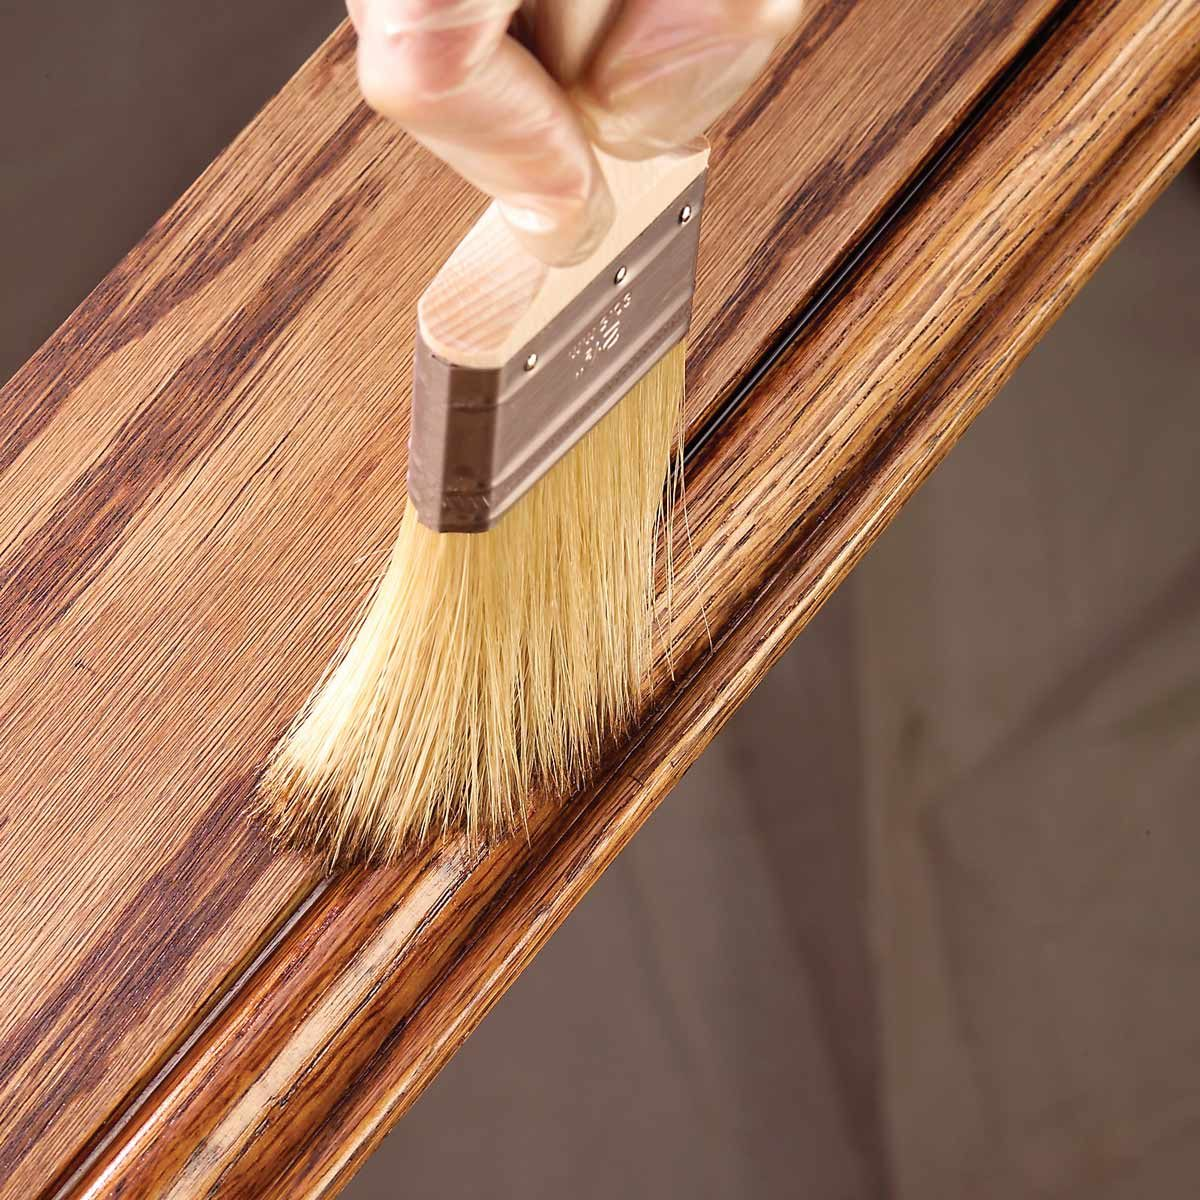 11 tips on how to finish wood trim the family handyman. Black Bedroom Furniture Sets. Home Design Ideas